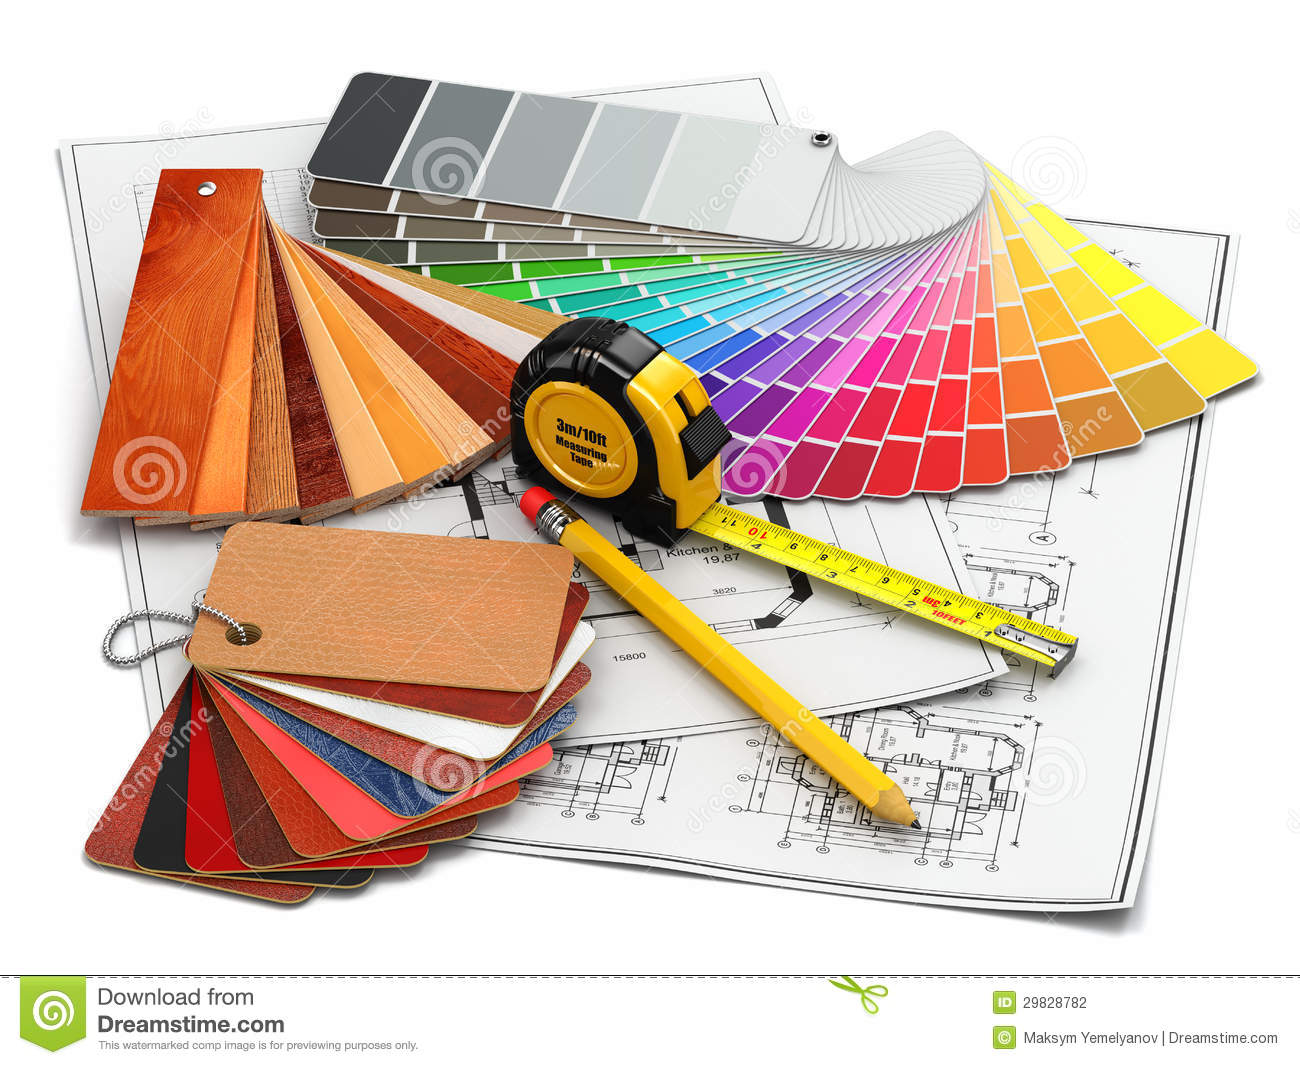 interior design architectural materials tools and